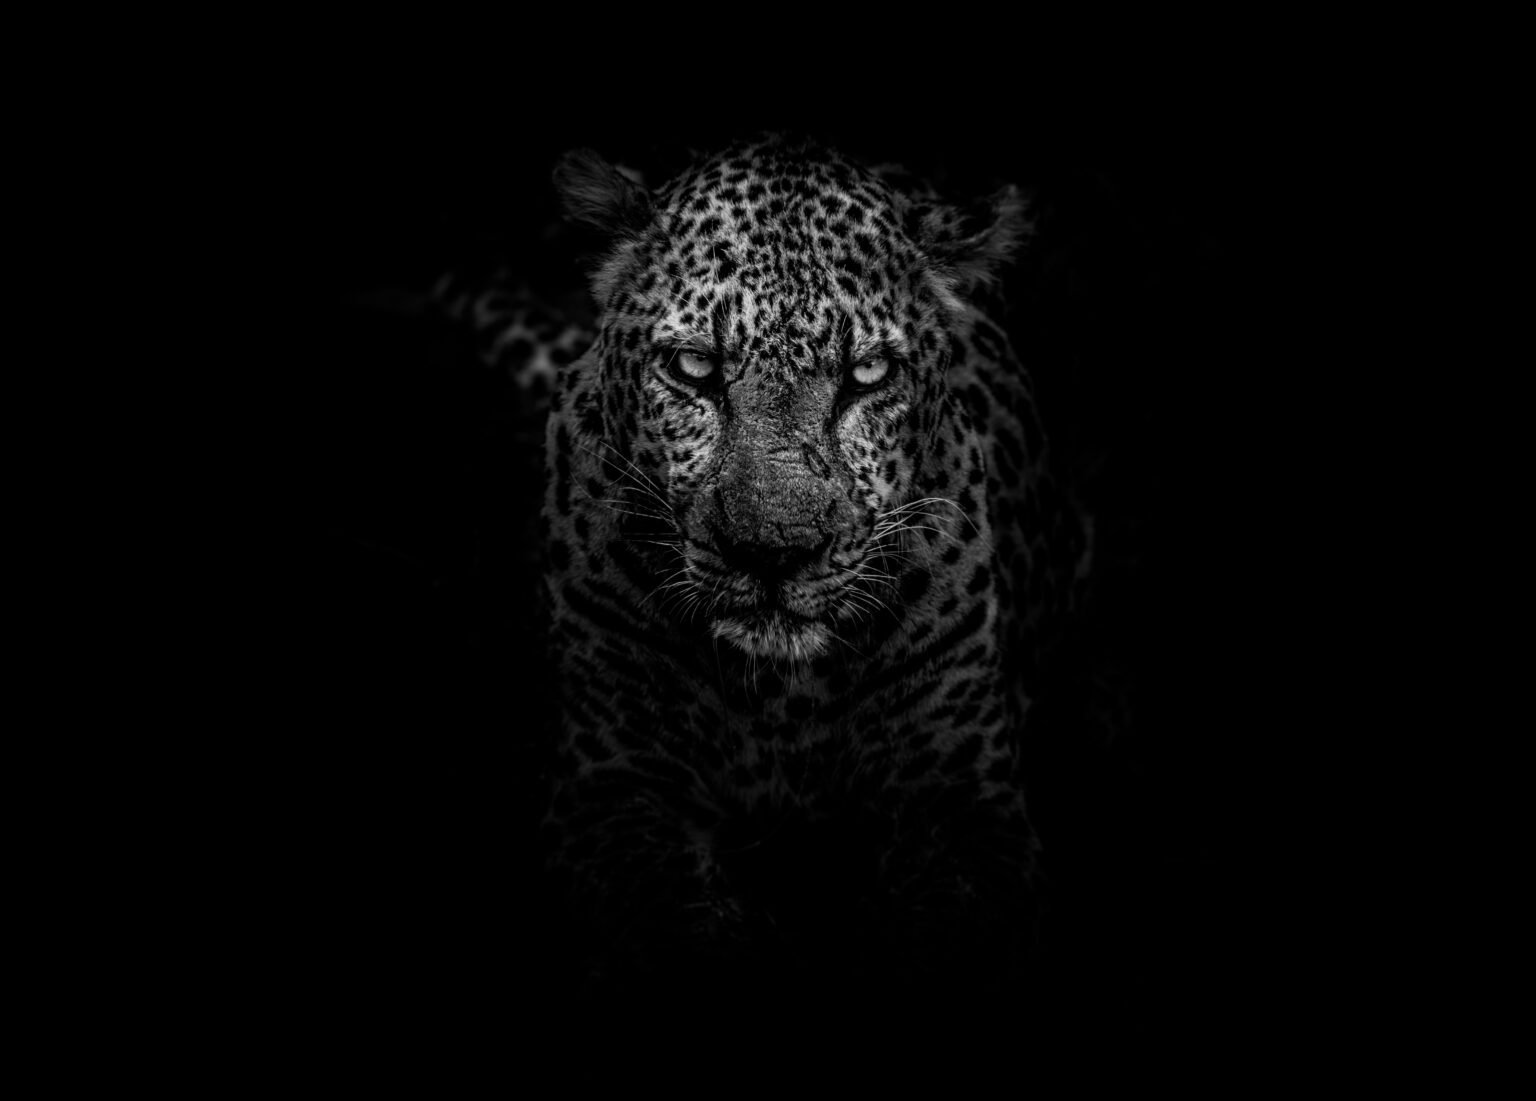 A leopard in the shadows trying to find the best way to build a monster personal brand